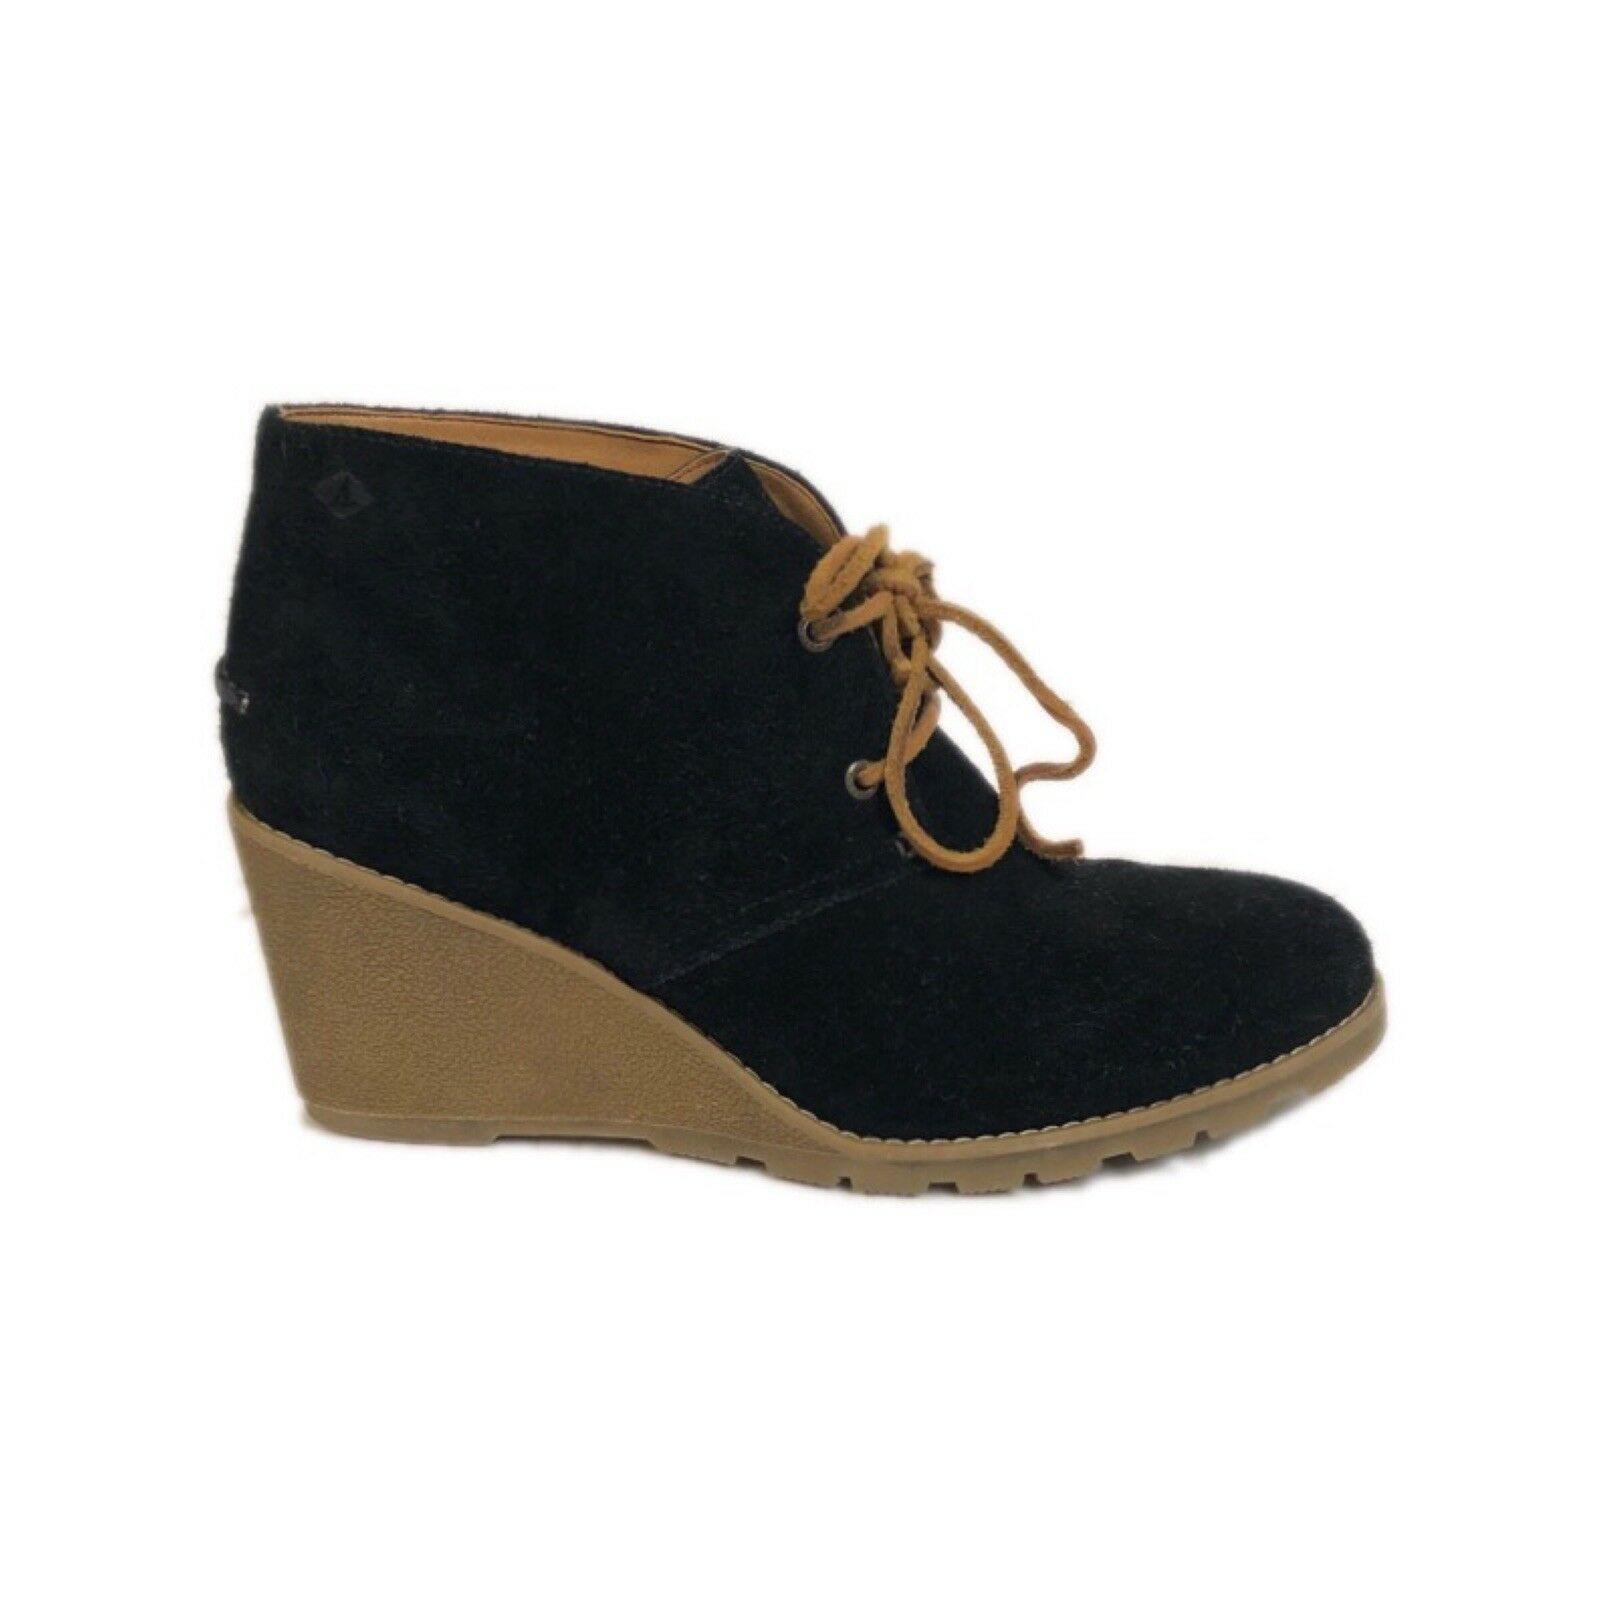 Sperry Top Sider Womens Stella Ankle Boots Size 9.5 Black Suede Leather Wedges